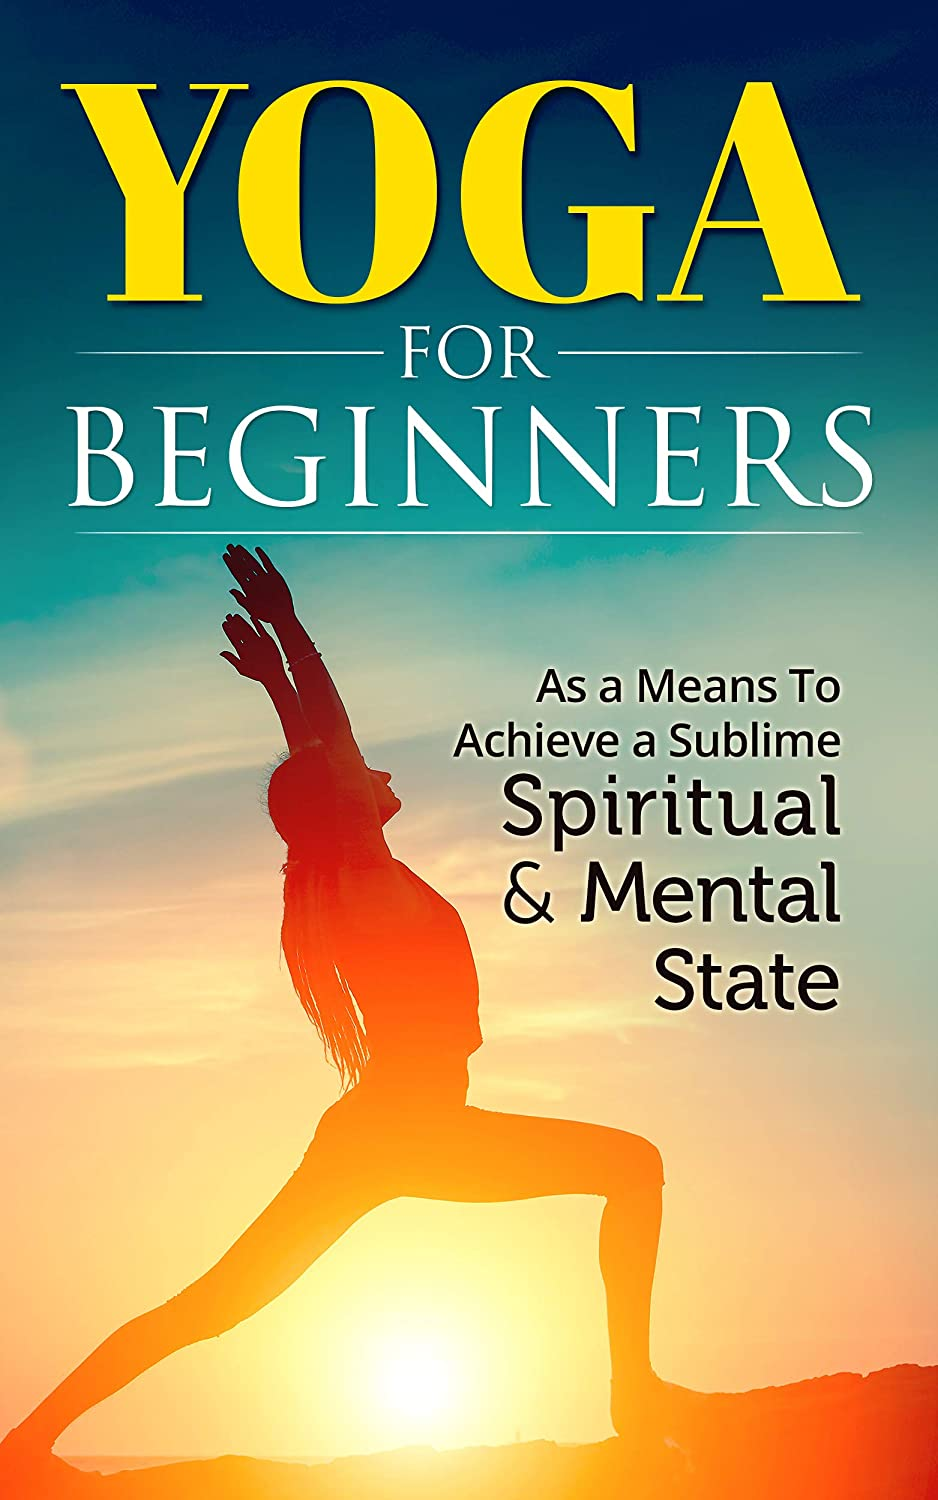 Yoga for beginners: As a Means To Achieve a Sublime ...